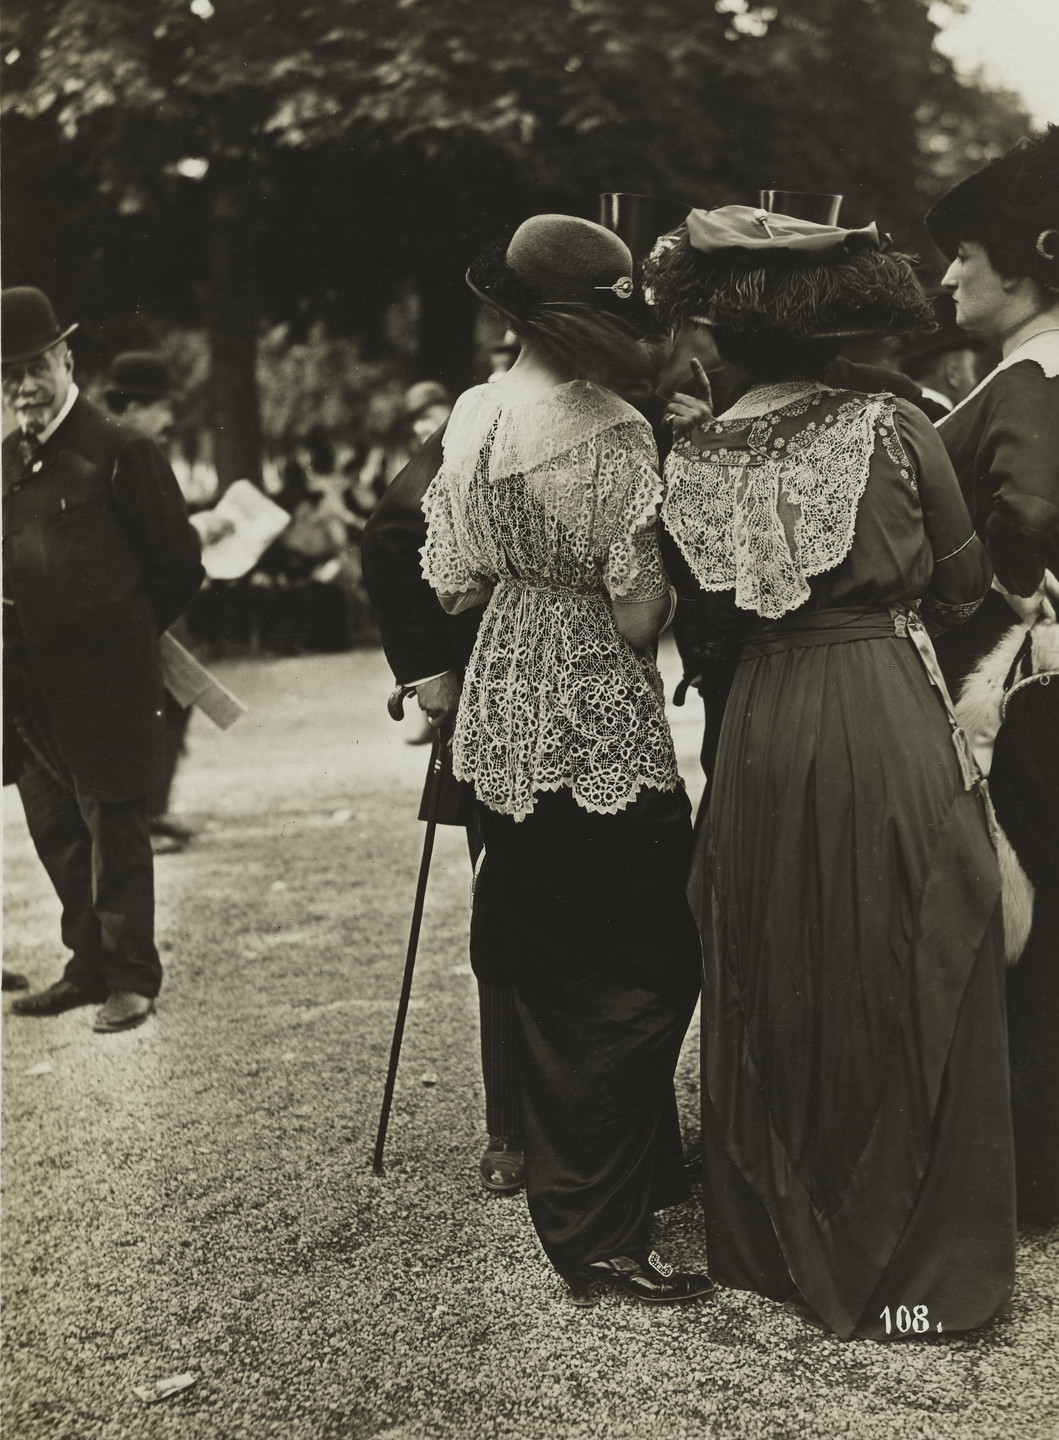 Jules Séeberger (Séeberger Freres), Louis Séeberger (Séeberger Frères), Henri Séeberger (Séeberger Frères). Fashion at the Races, Longchamps (La Mode aux Courses, Longchamps). May 25, 1913